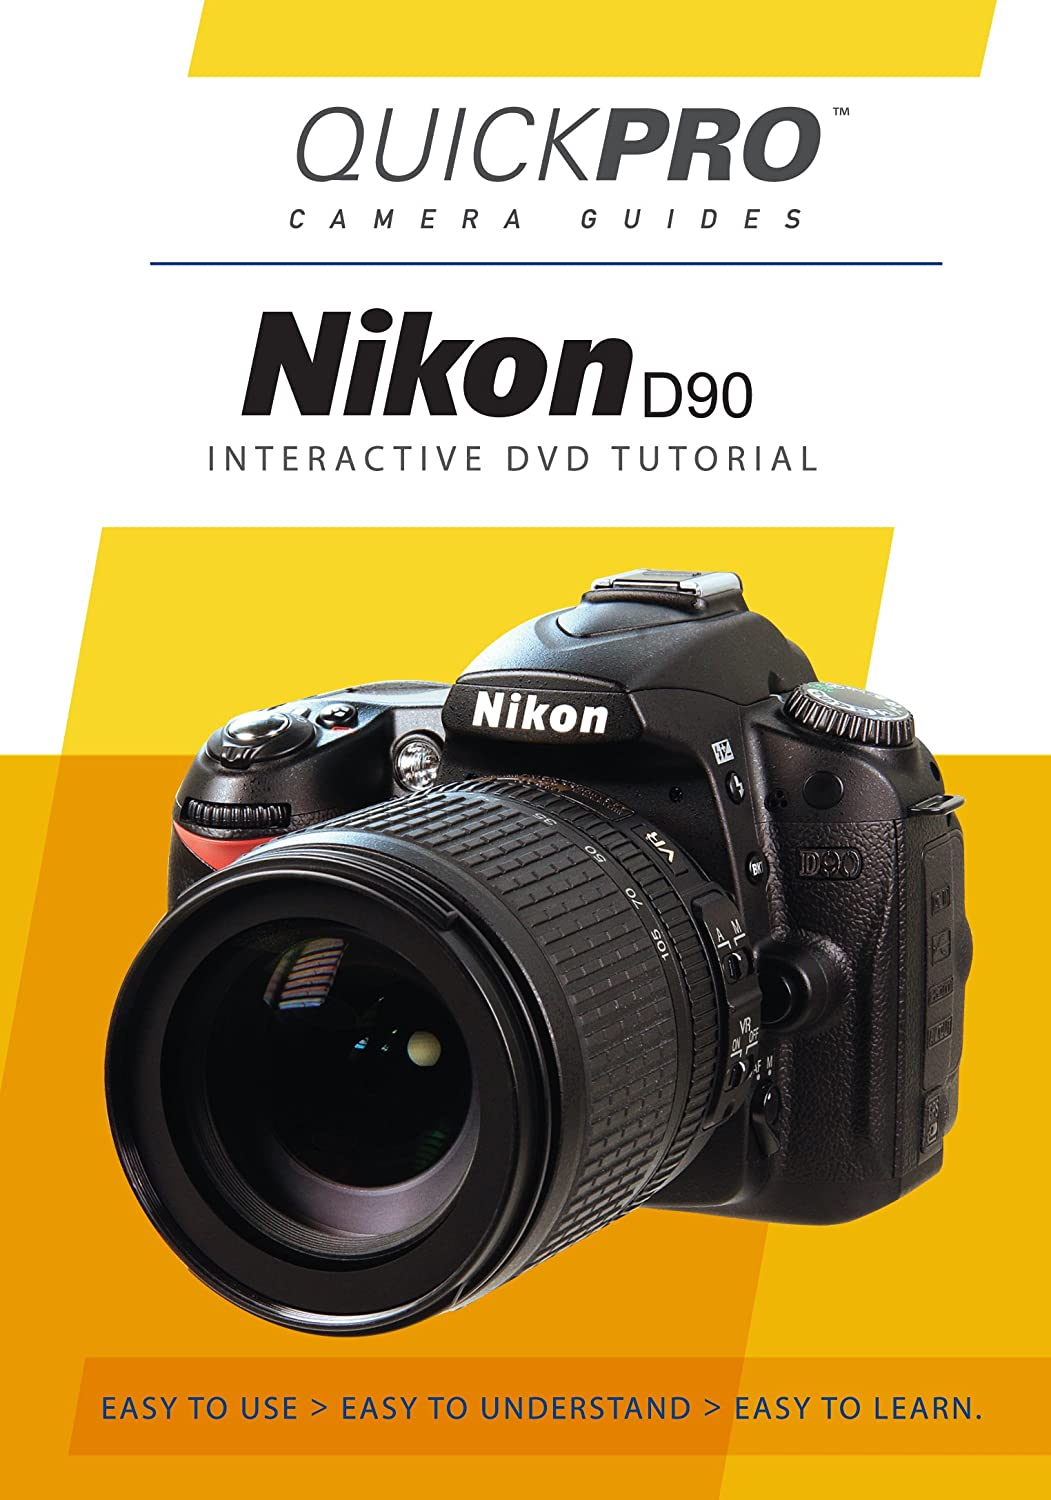 Amazon.com: Nikon D90 Instructional DVD by QuickPro Camera Guides: Todd  Hansen, QuickPro: Movies & TV